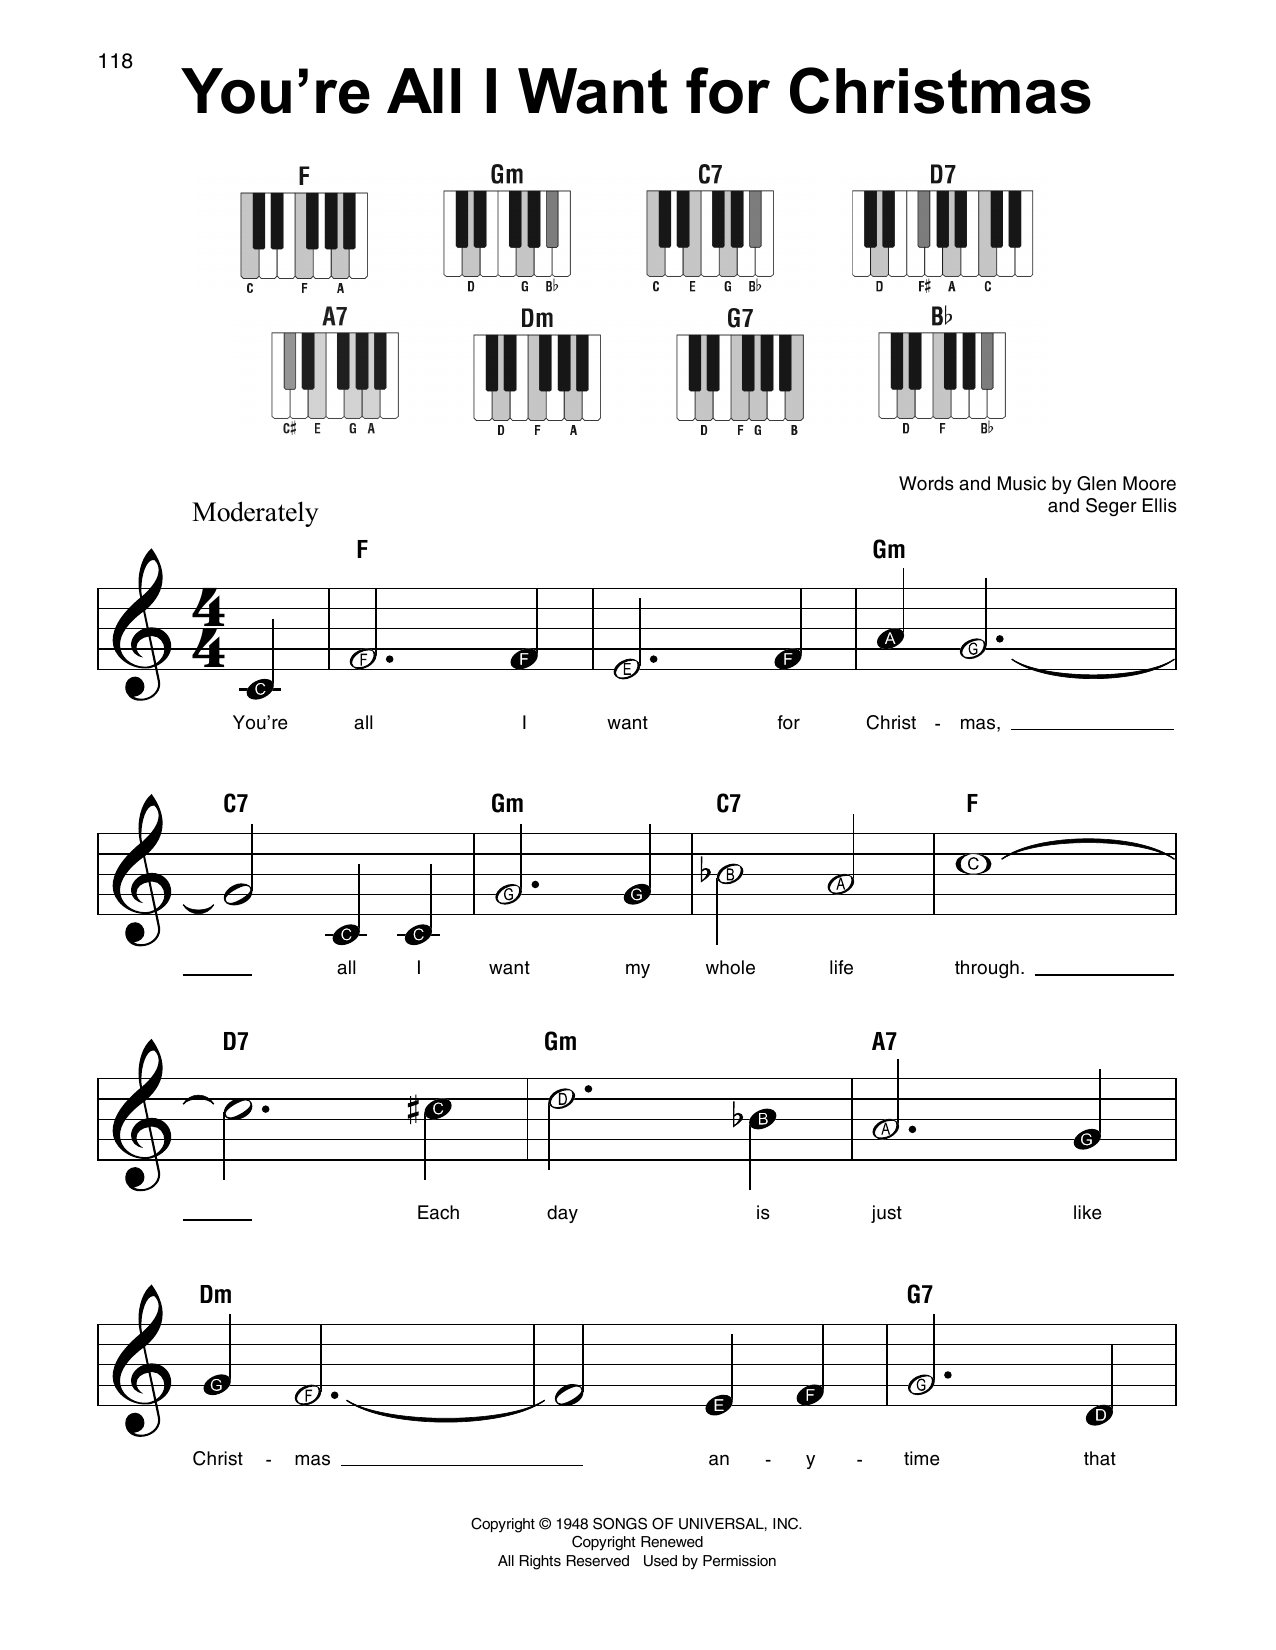 All I Want For Christmas Is You Lyrics To Print.Glen Moore You Re All I Want For Christmas Sheet Music Notes Chords Download Printable Lead Sheet Fake Book Sku 191524